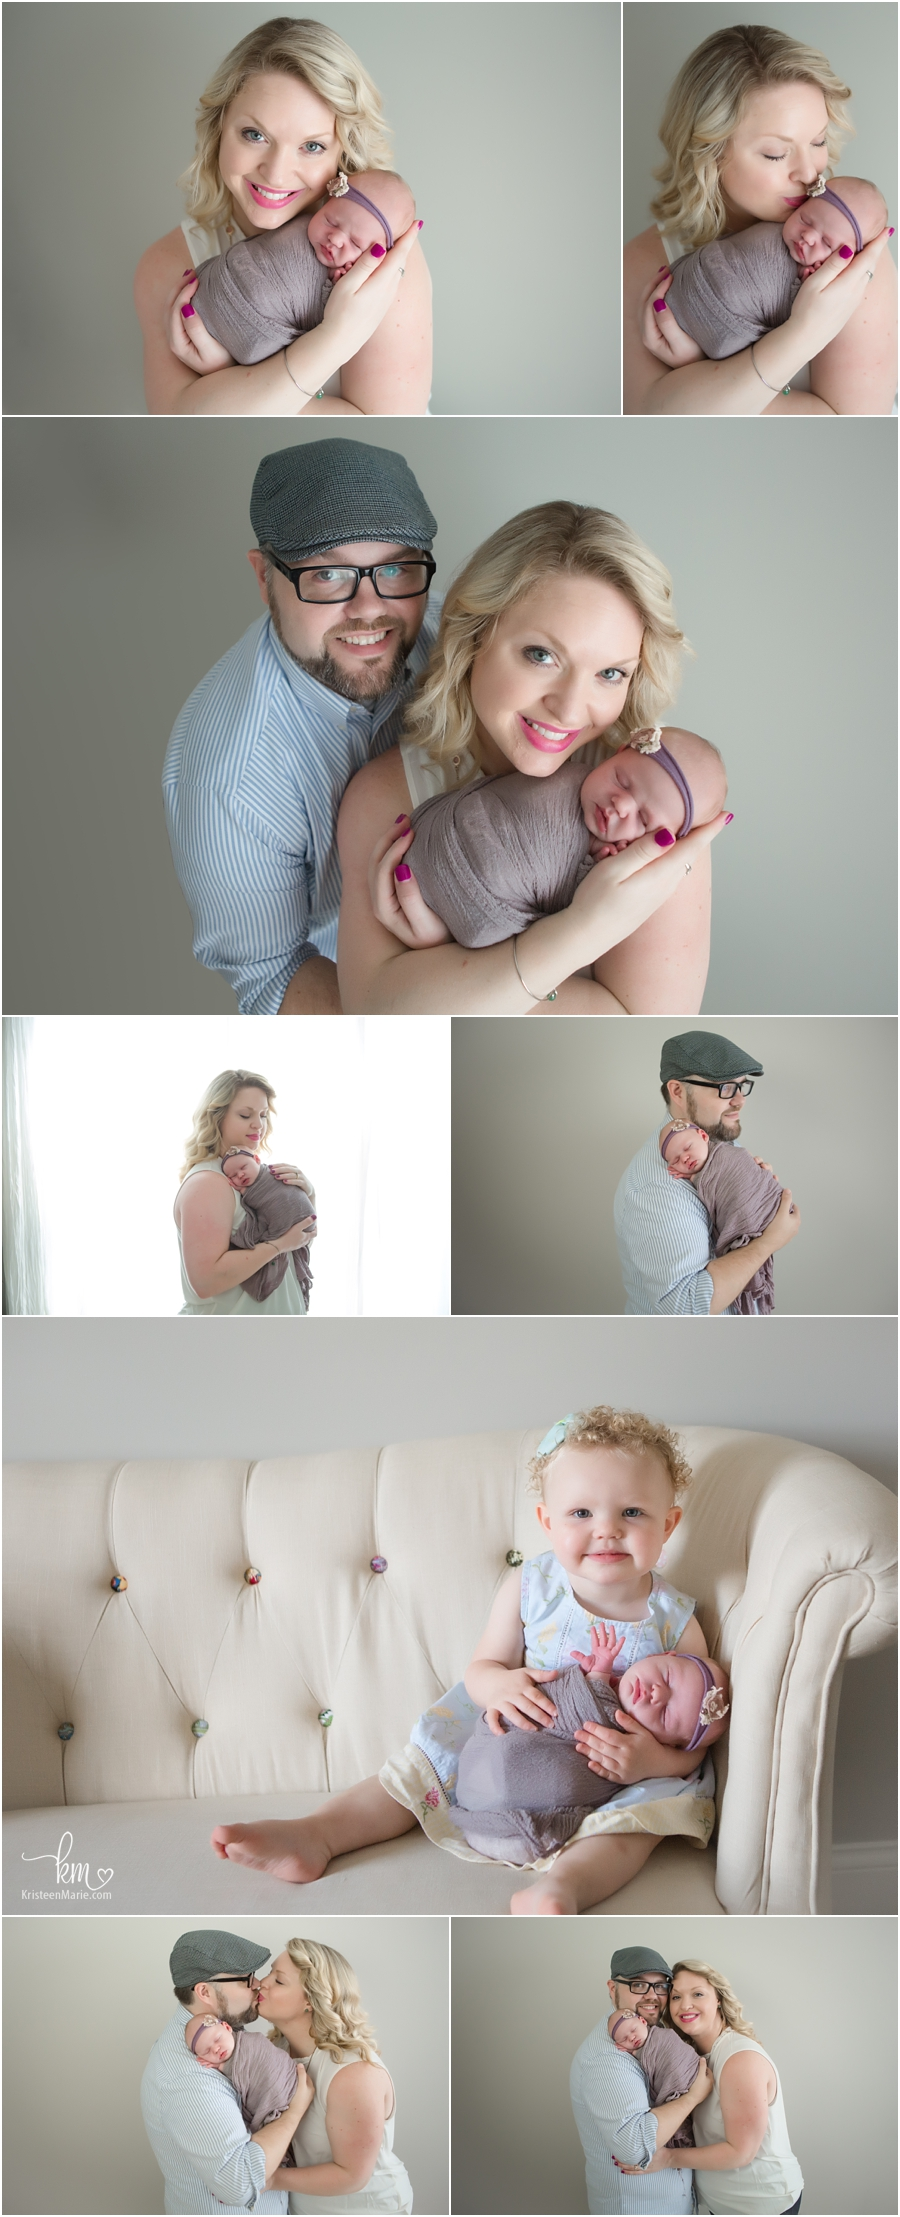 family pictures - Zionsville family photography with newborn baby